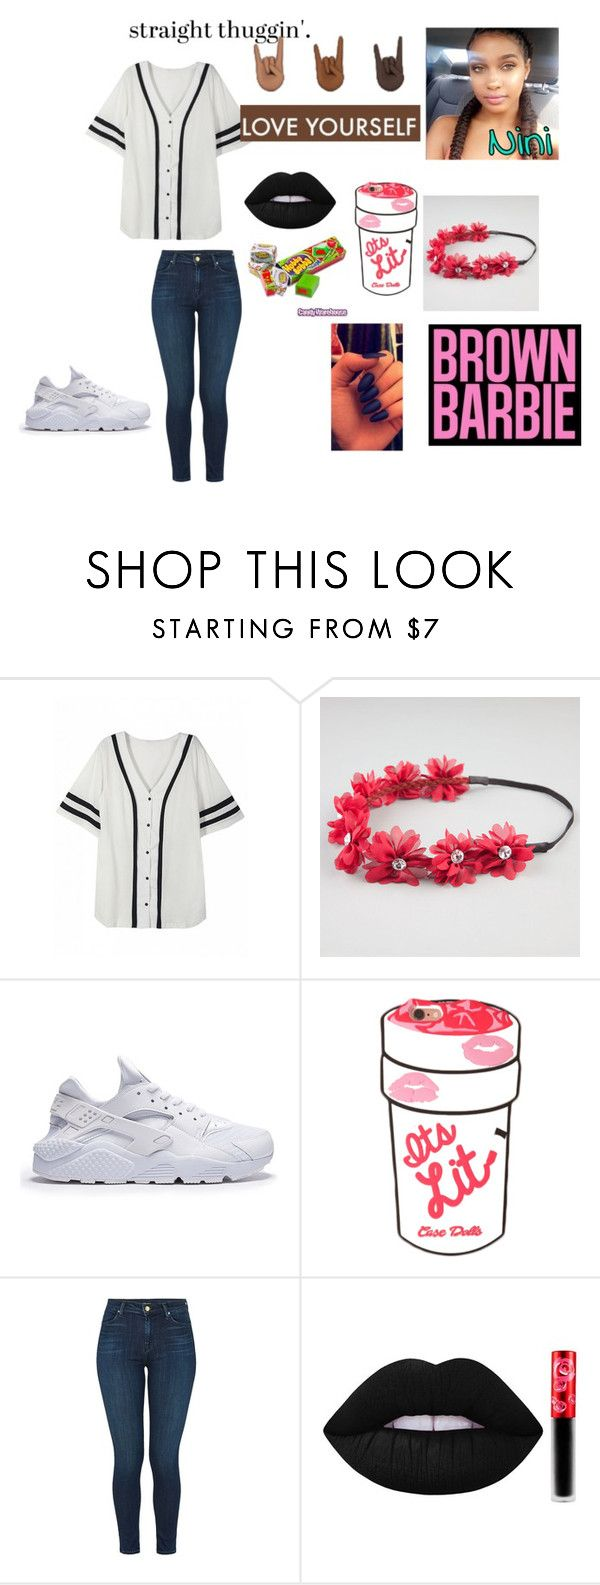 """jersey"" by zayslayy ❤ liked on Polyvore featuring Full Tilt, J Brand and Lime Crime"